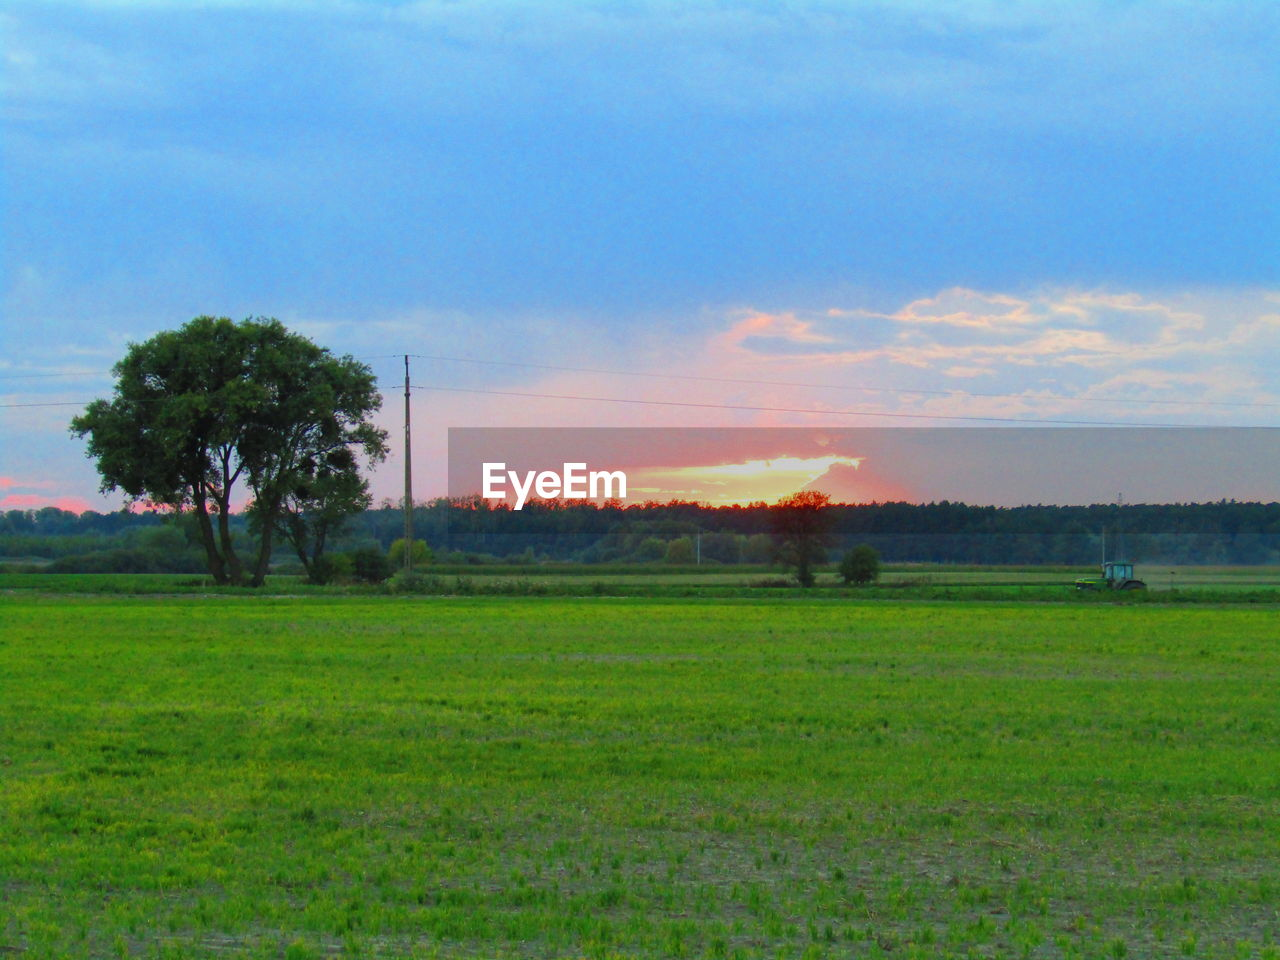 sky, plant, grass, field, landscape, tree, land, environment, green color, tranquil scene, tranquility, nature, scenics - nature, beauty in nature, cloud - sky, no people, outdoors, growth, day, sunset